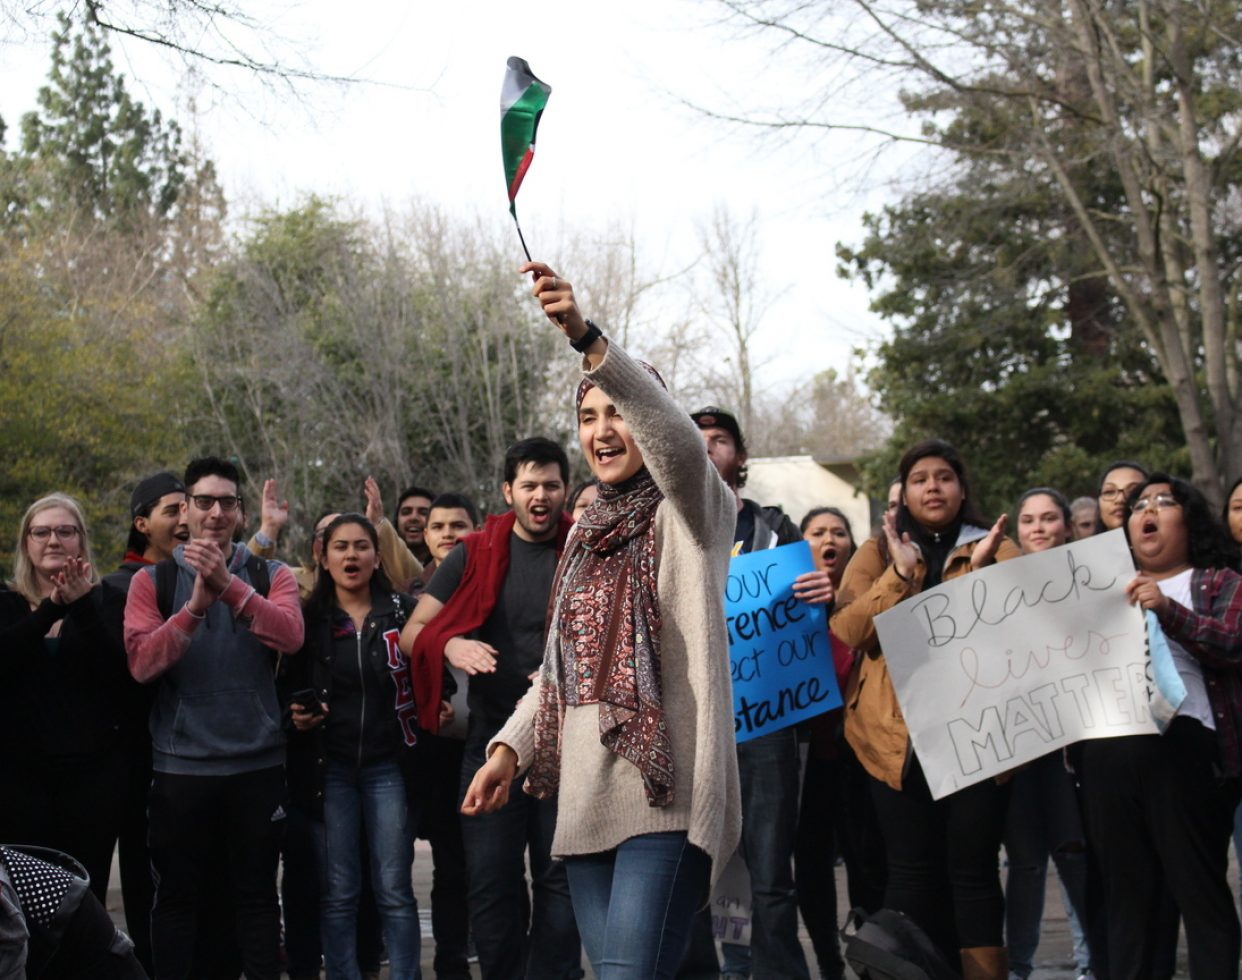 Demonstrators marched through the Sacramento State campus during a #NoBanNoWall protest on Feb. 2, 2017. An estimated 300 people attended.